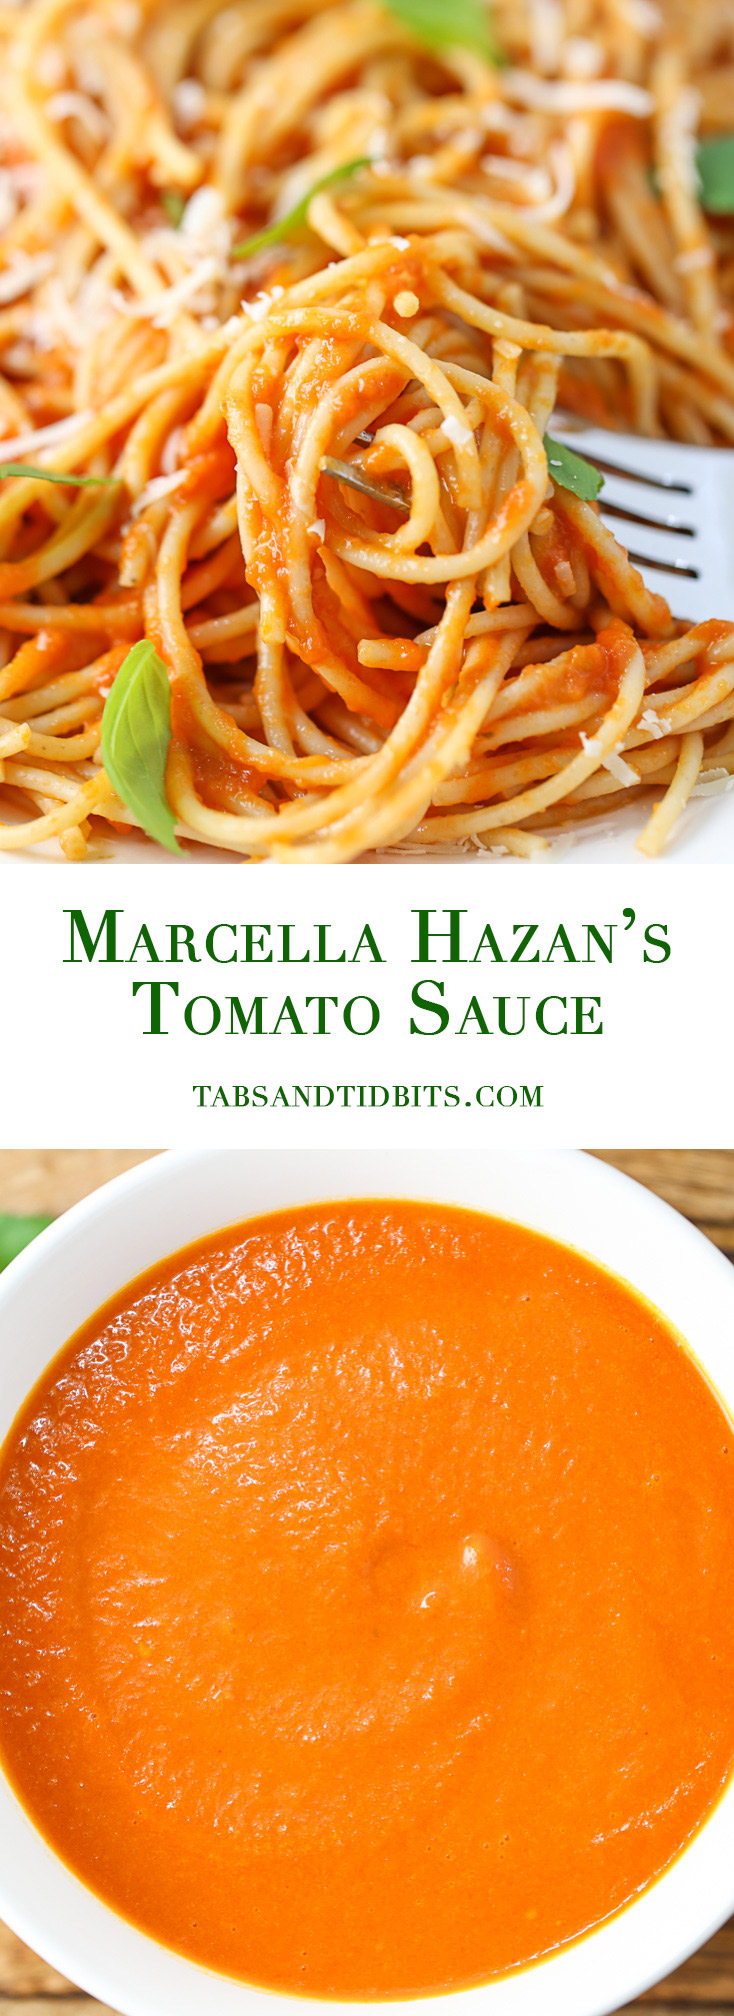 Marcella Hazan's Tomato Sauce - A simple and versatile three ingredient tomato sauce that is velvety delicious!